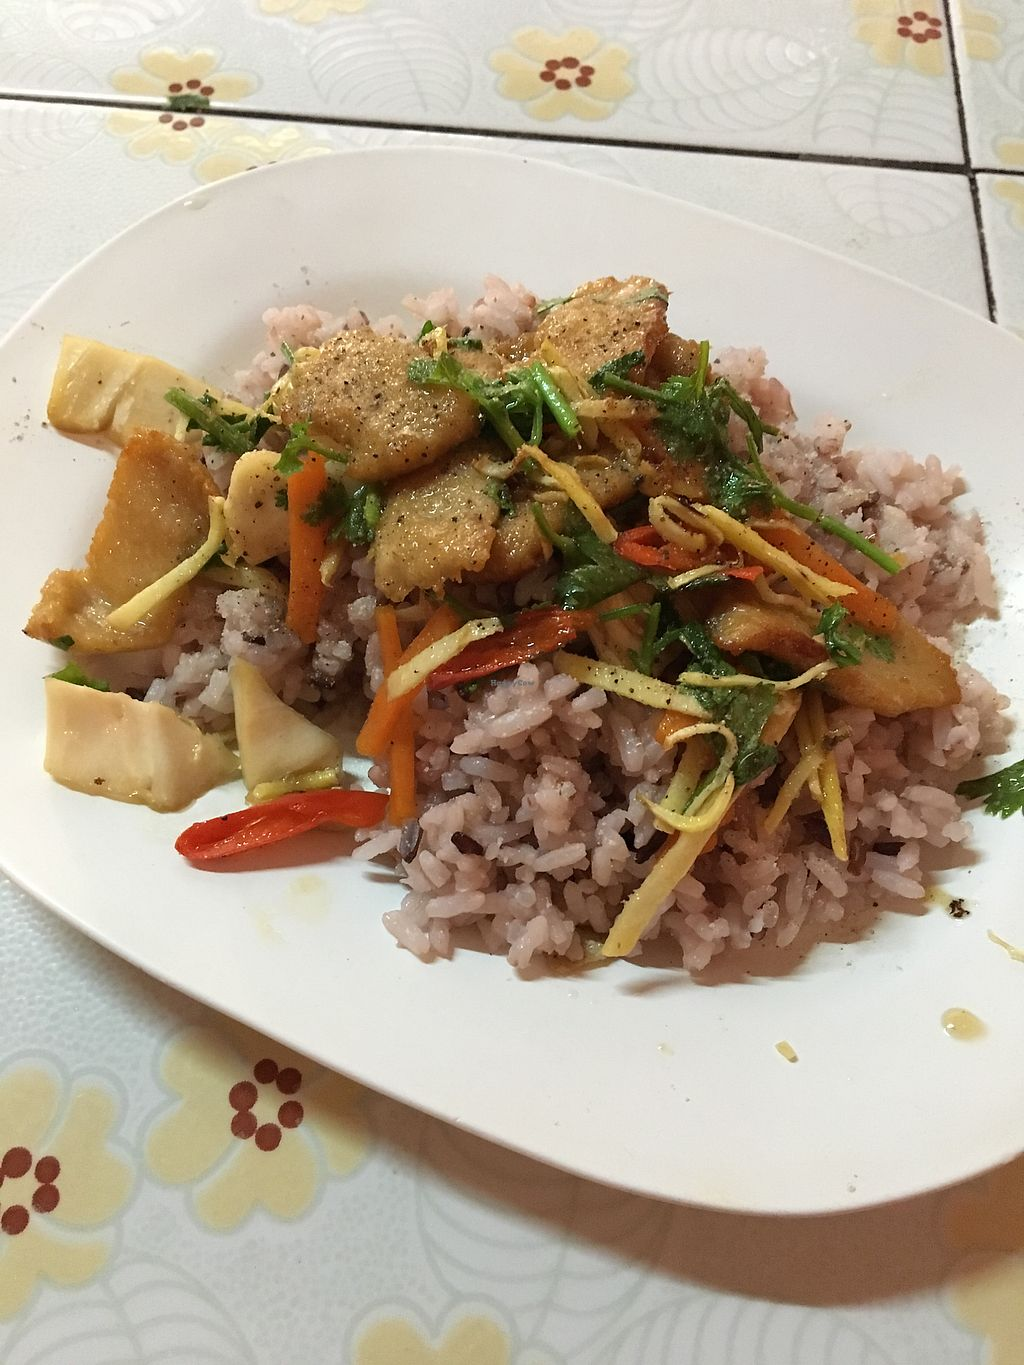 """Photo of Ming Zhen  by <a href=""""/members/profile/onthewindowsill"""">onthewindowsill</a> <br/>Vegan pork with ginger over rice <br/> January 16, 2018  - <a href='/contact/abuse/image/109565/347058'>Report</a>"""